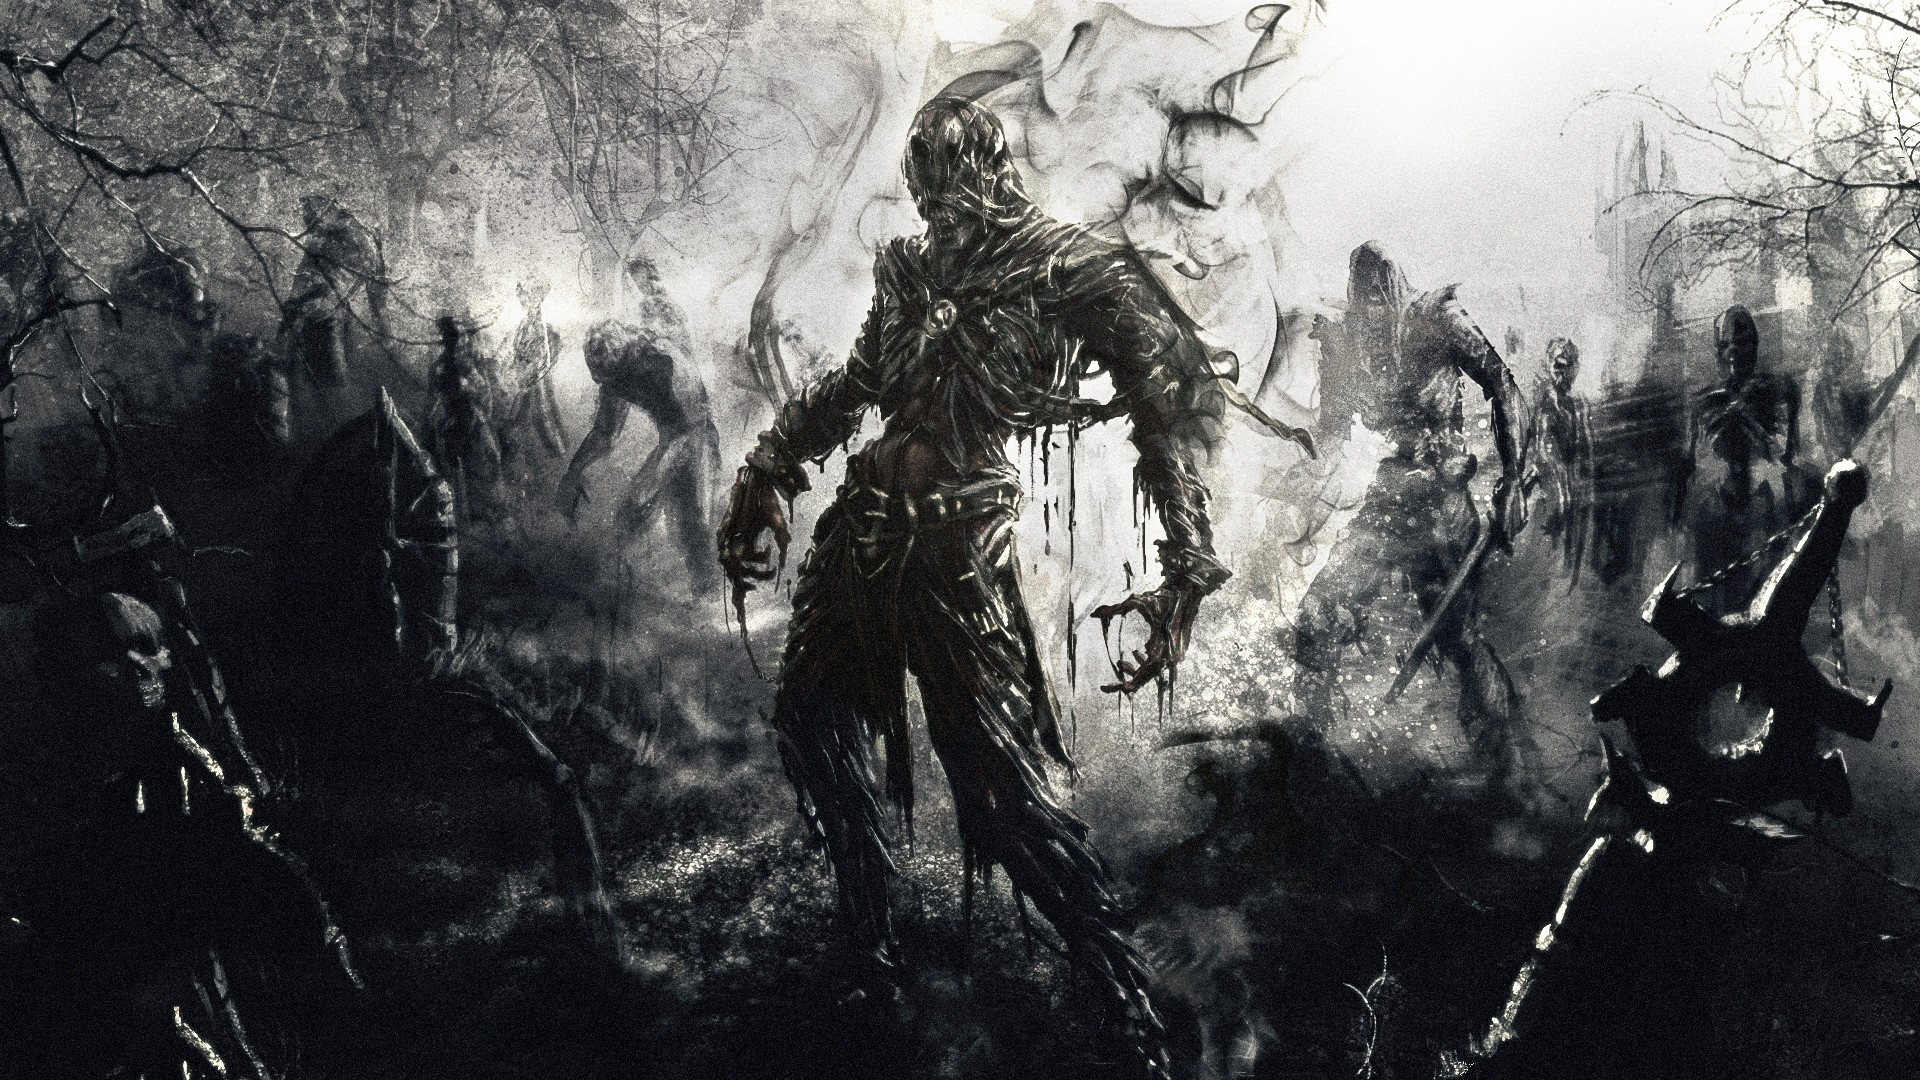 Res: 1920x1080, Download Wallpaper  zombies, fantasy, art Full HD 1080p HD  Background